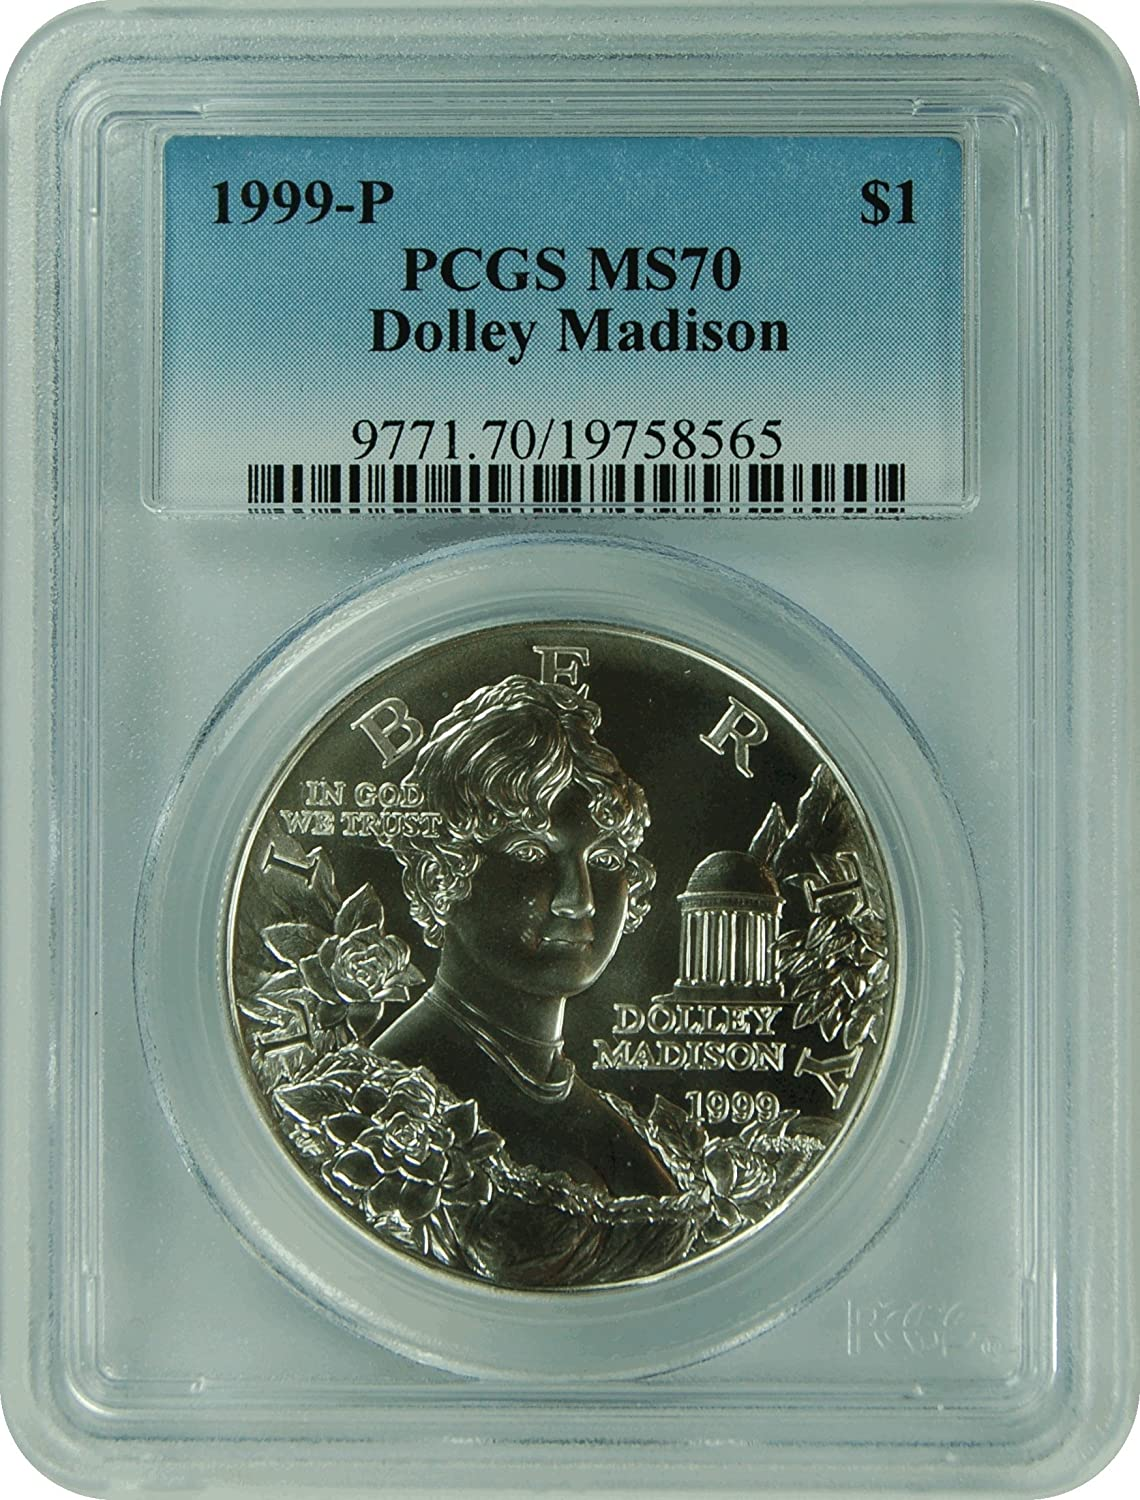 PCGS MS70 2014-P US Civil Rights Commemorative BU Silver $1